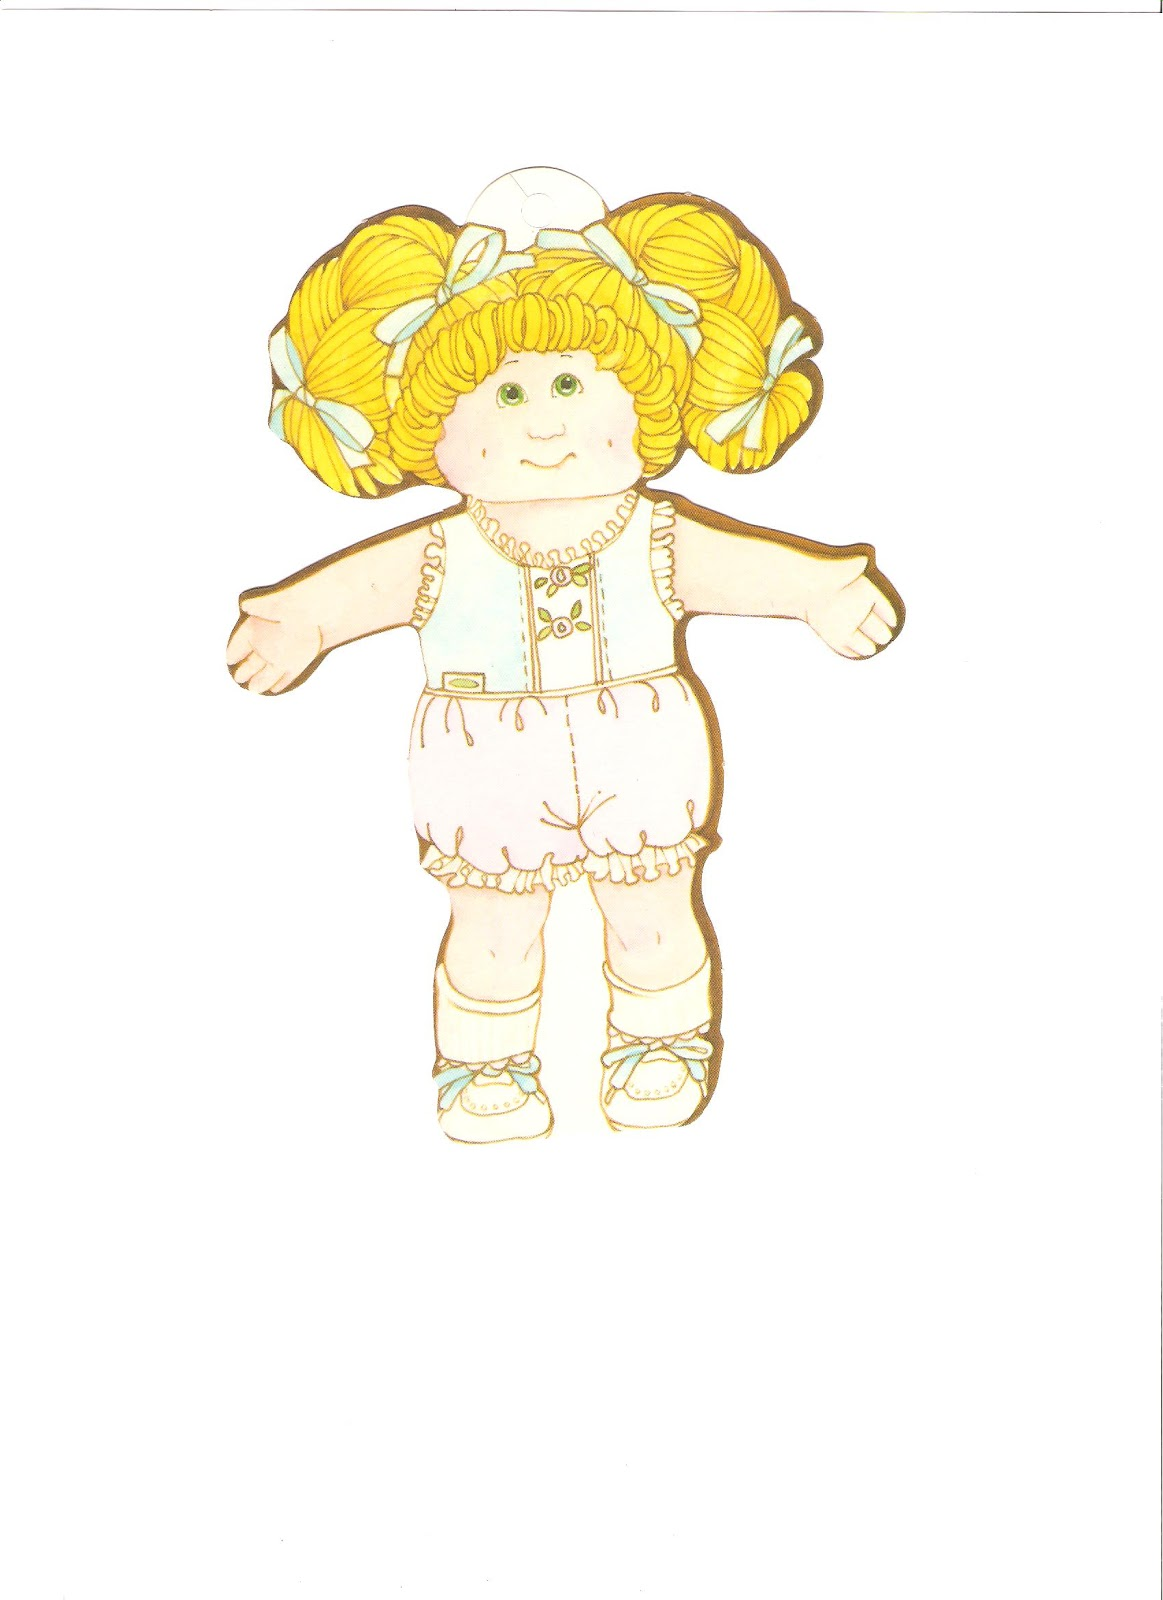 cabbage patch kids essays Her body is plastic and there is no writing, stains or damage cabbage patch robe has a 1985 date on it cabbage patch kids fabric sun visor.